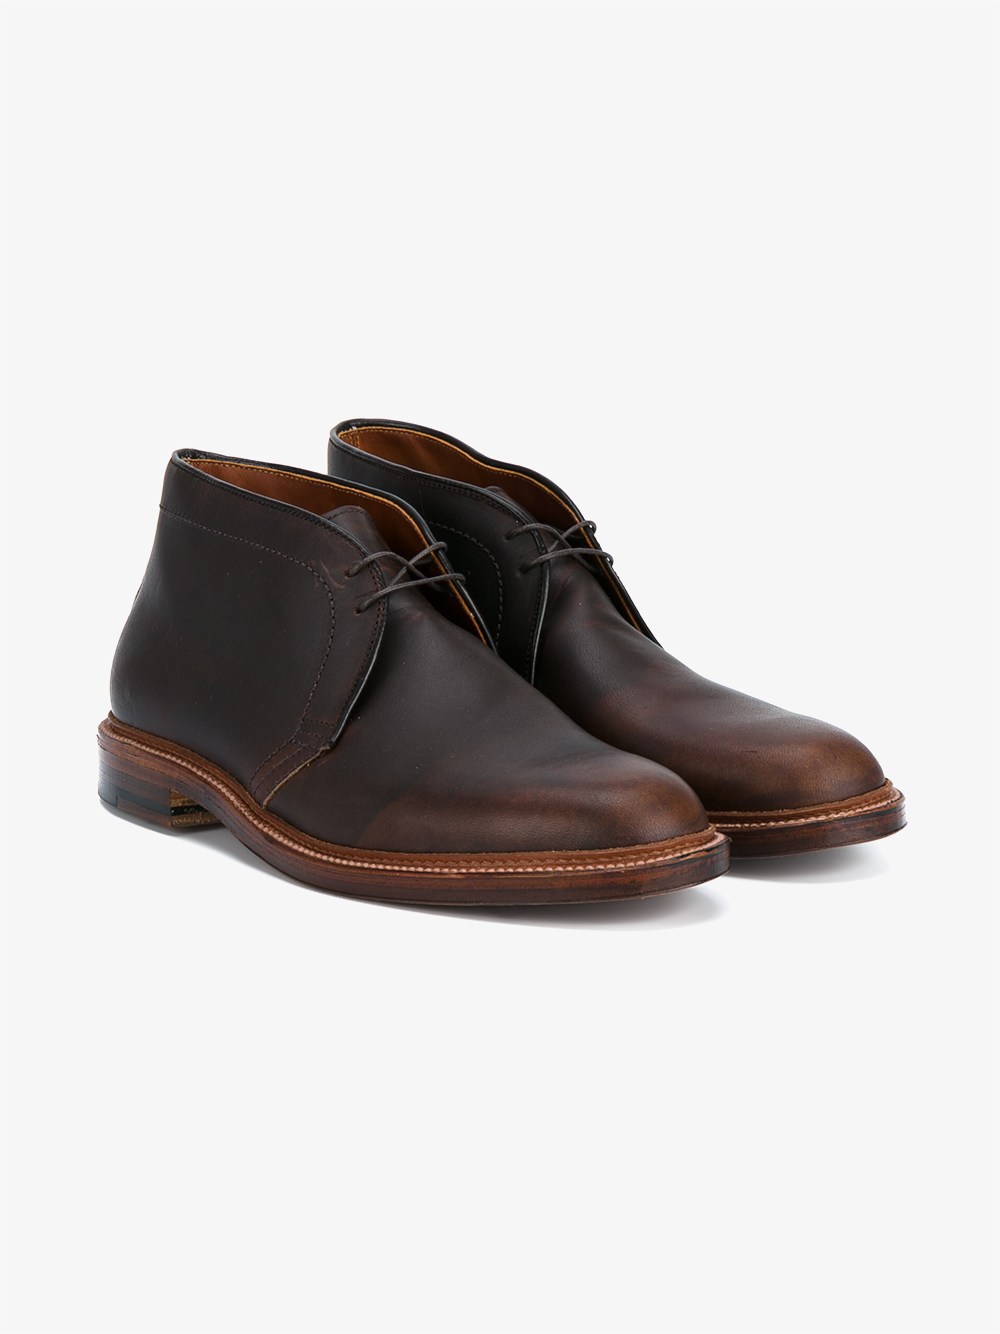 Lyst Alden Chukka Leather Boots In Brown For Men